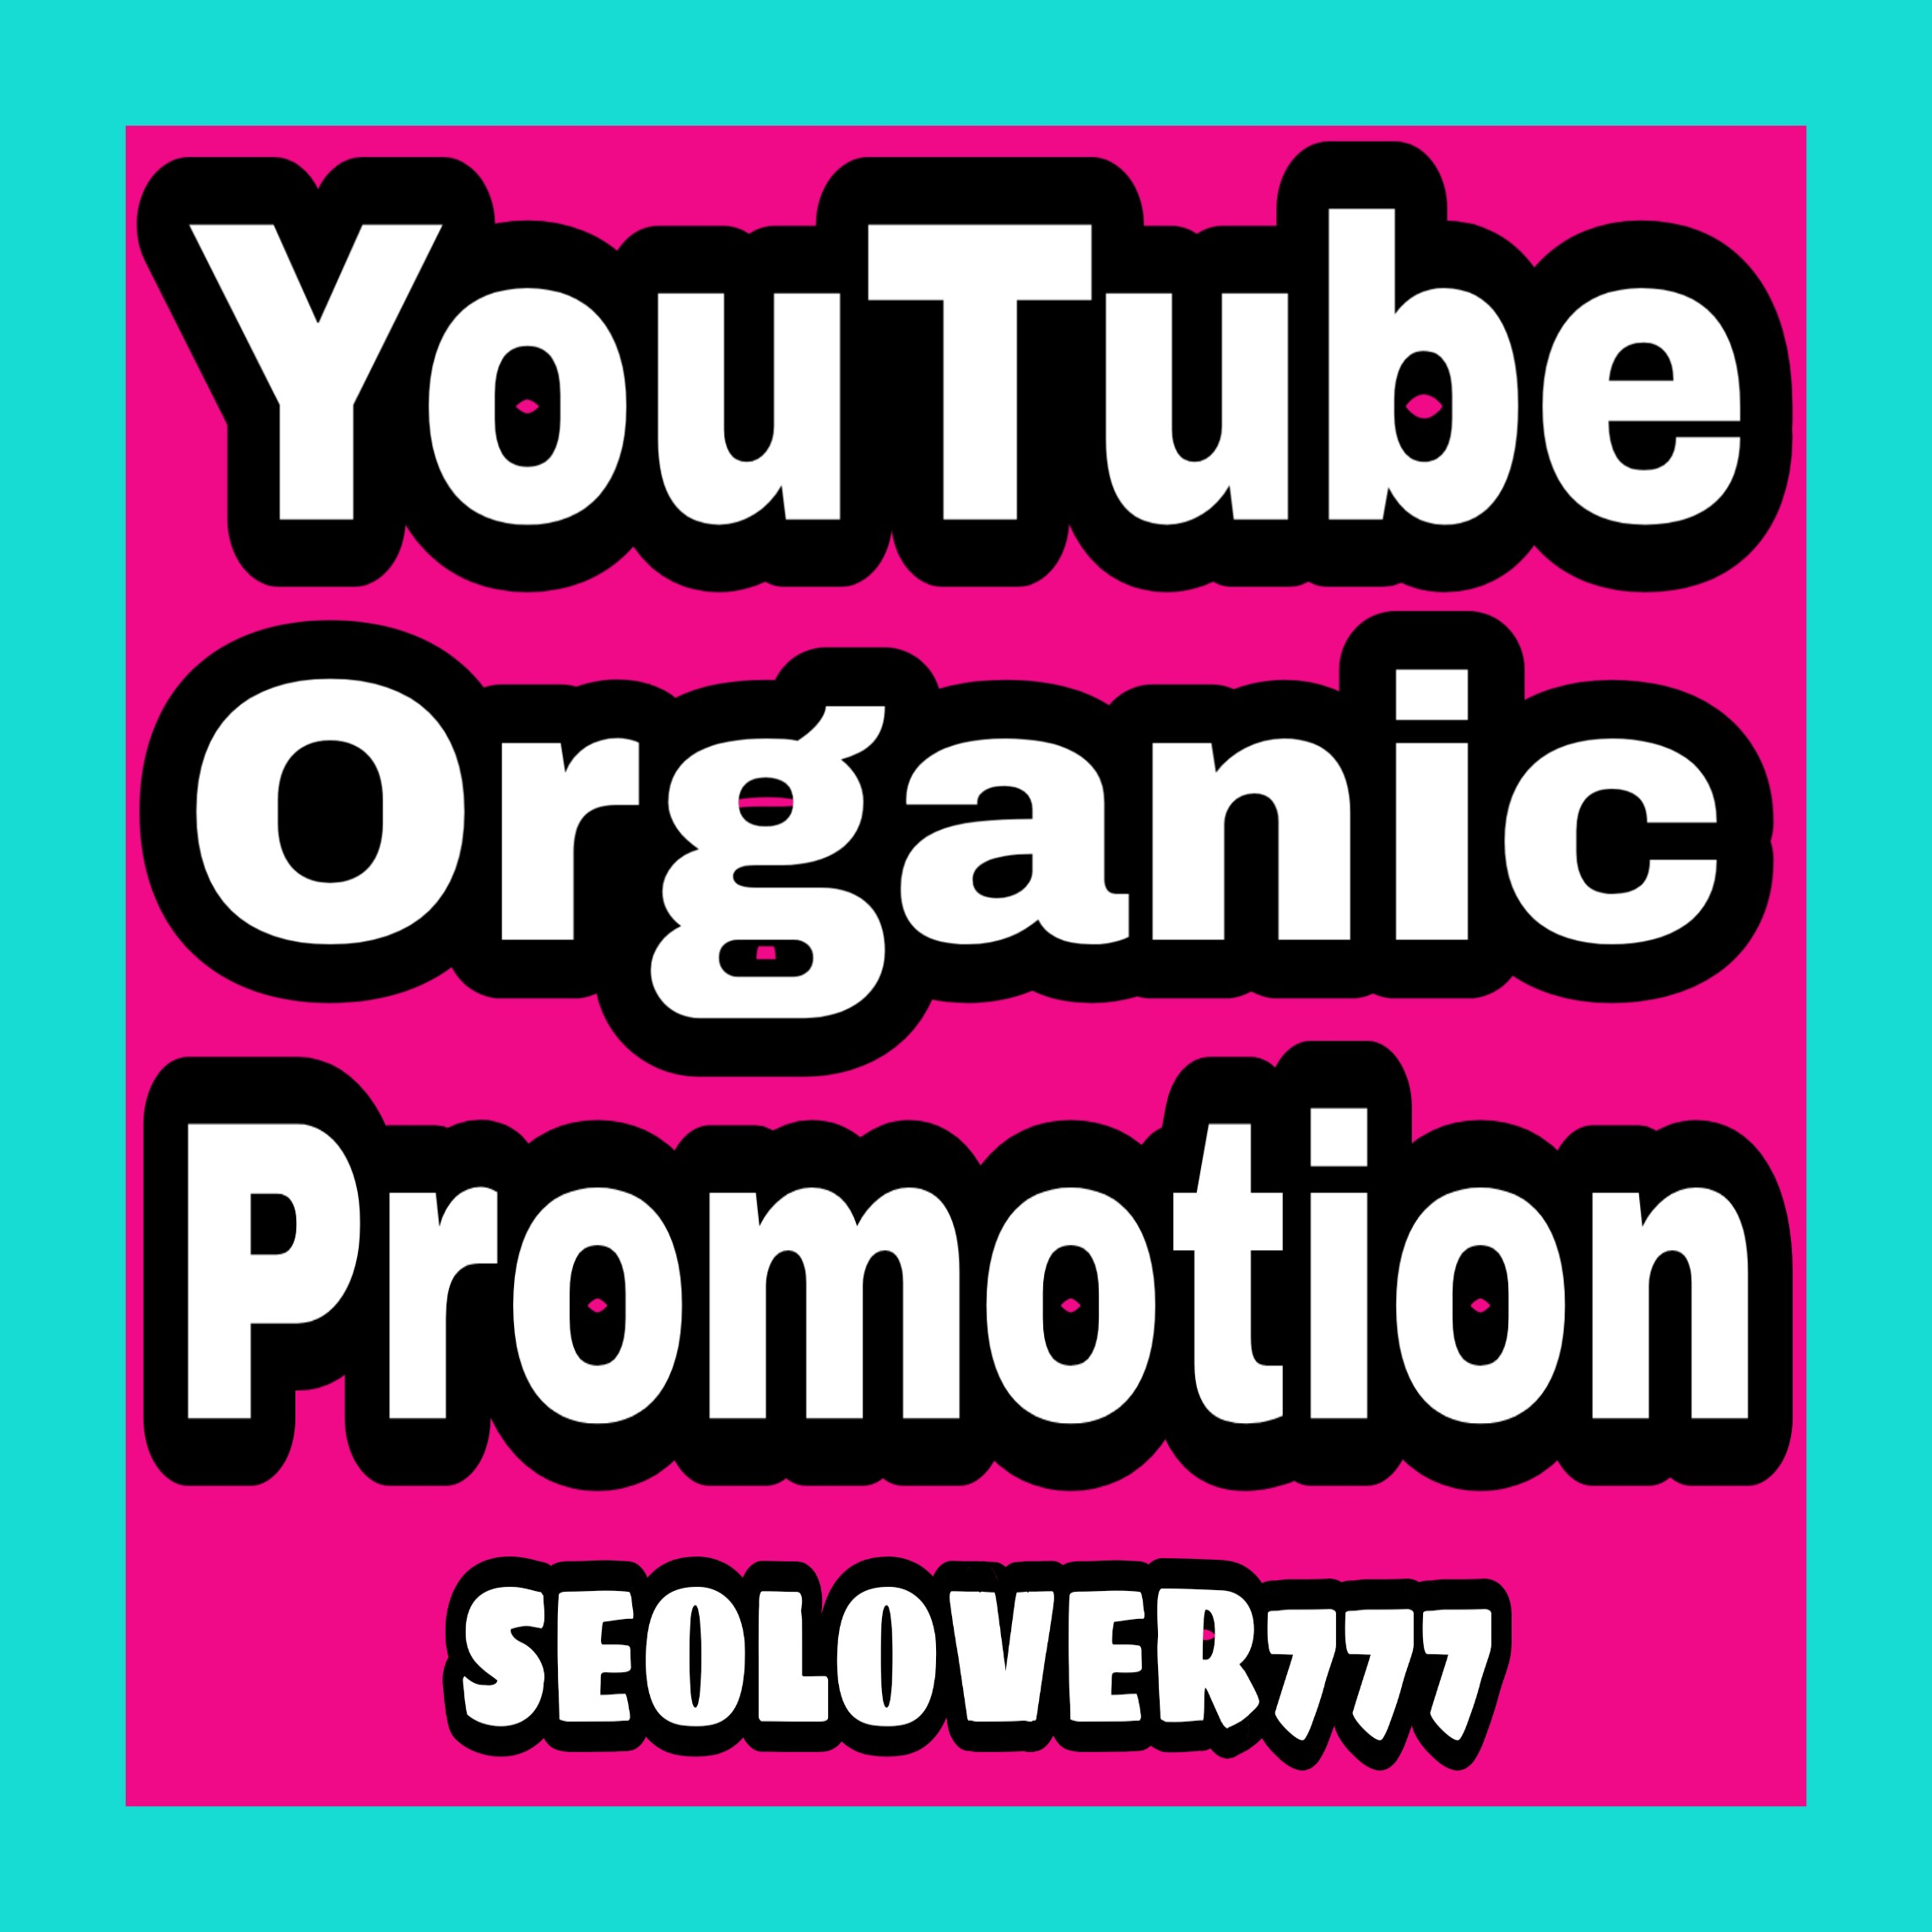 Best YouTube Organic Promotion & Marketing